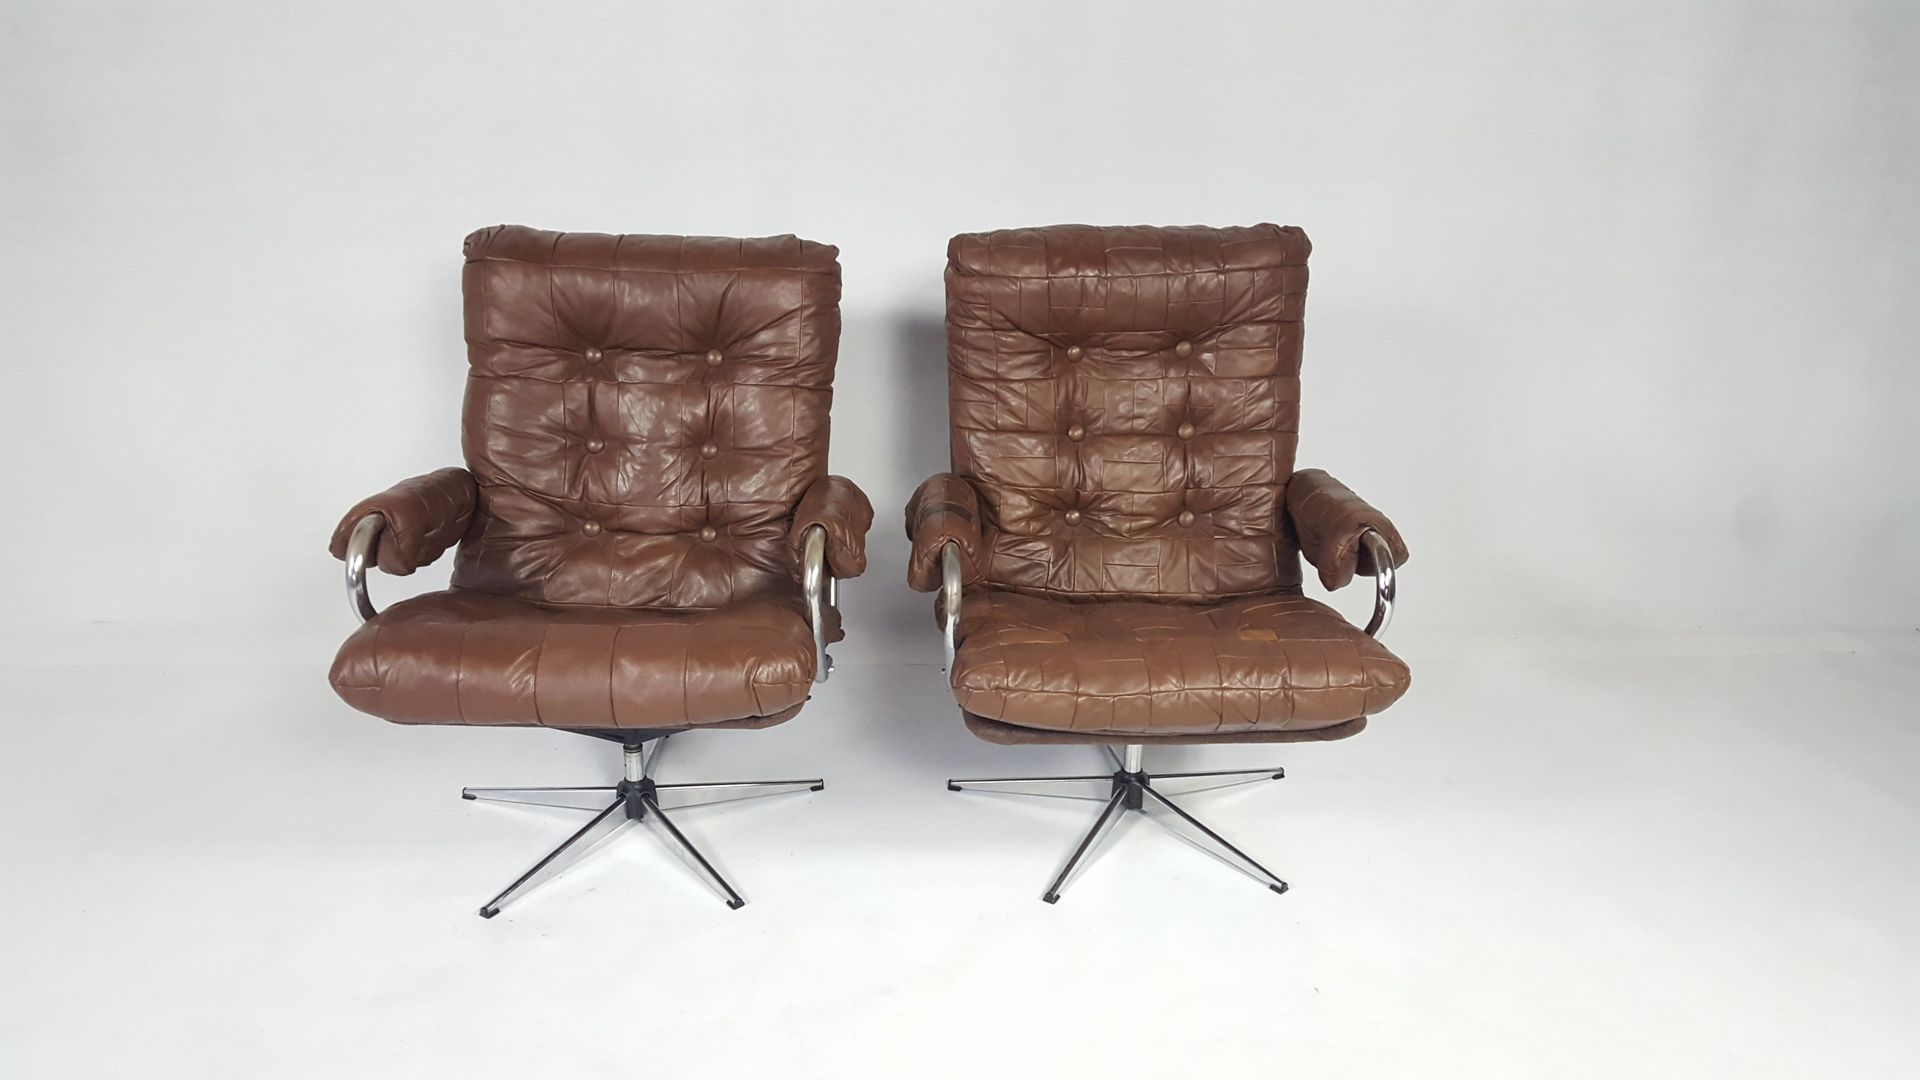 Vintage Leather Swivel Chair Set of 2 for sale at Pamono